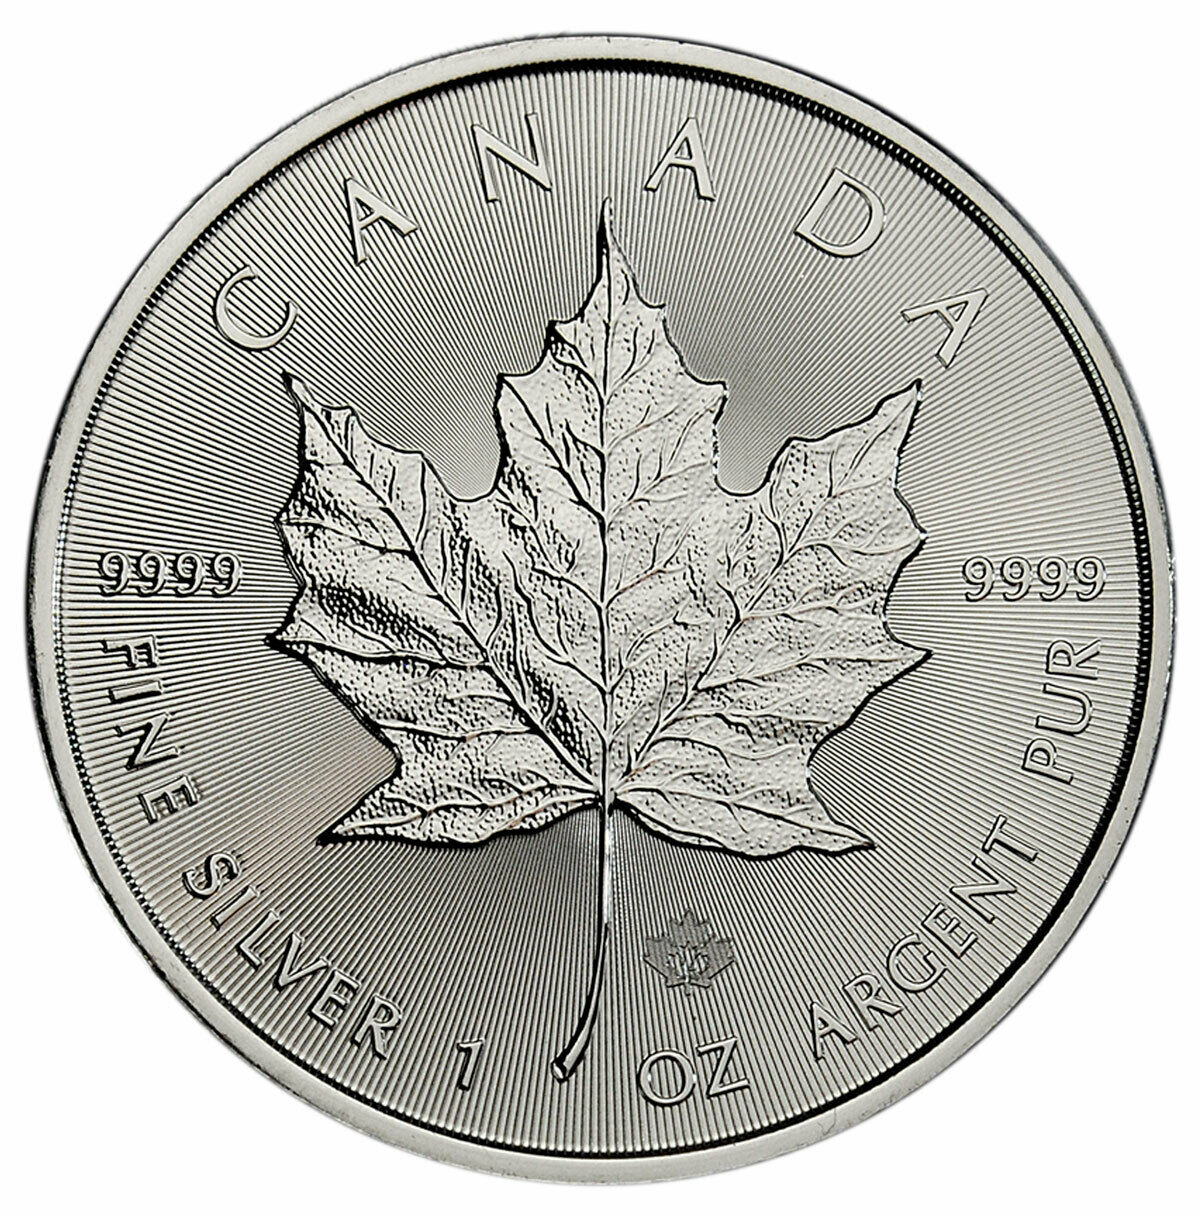 2021 1 oz Canadian 9999 Silver Maple Leaf Coin BU